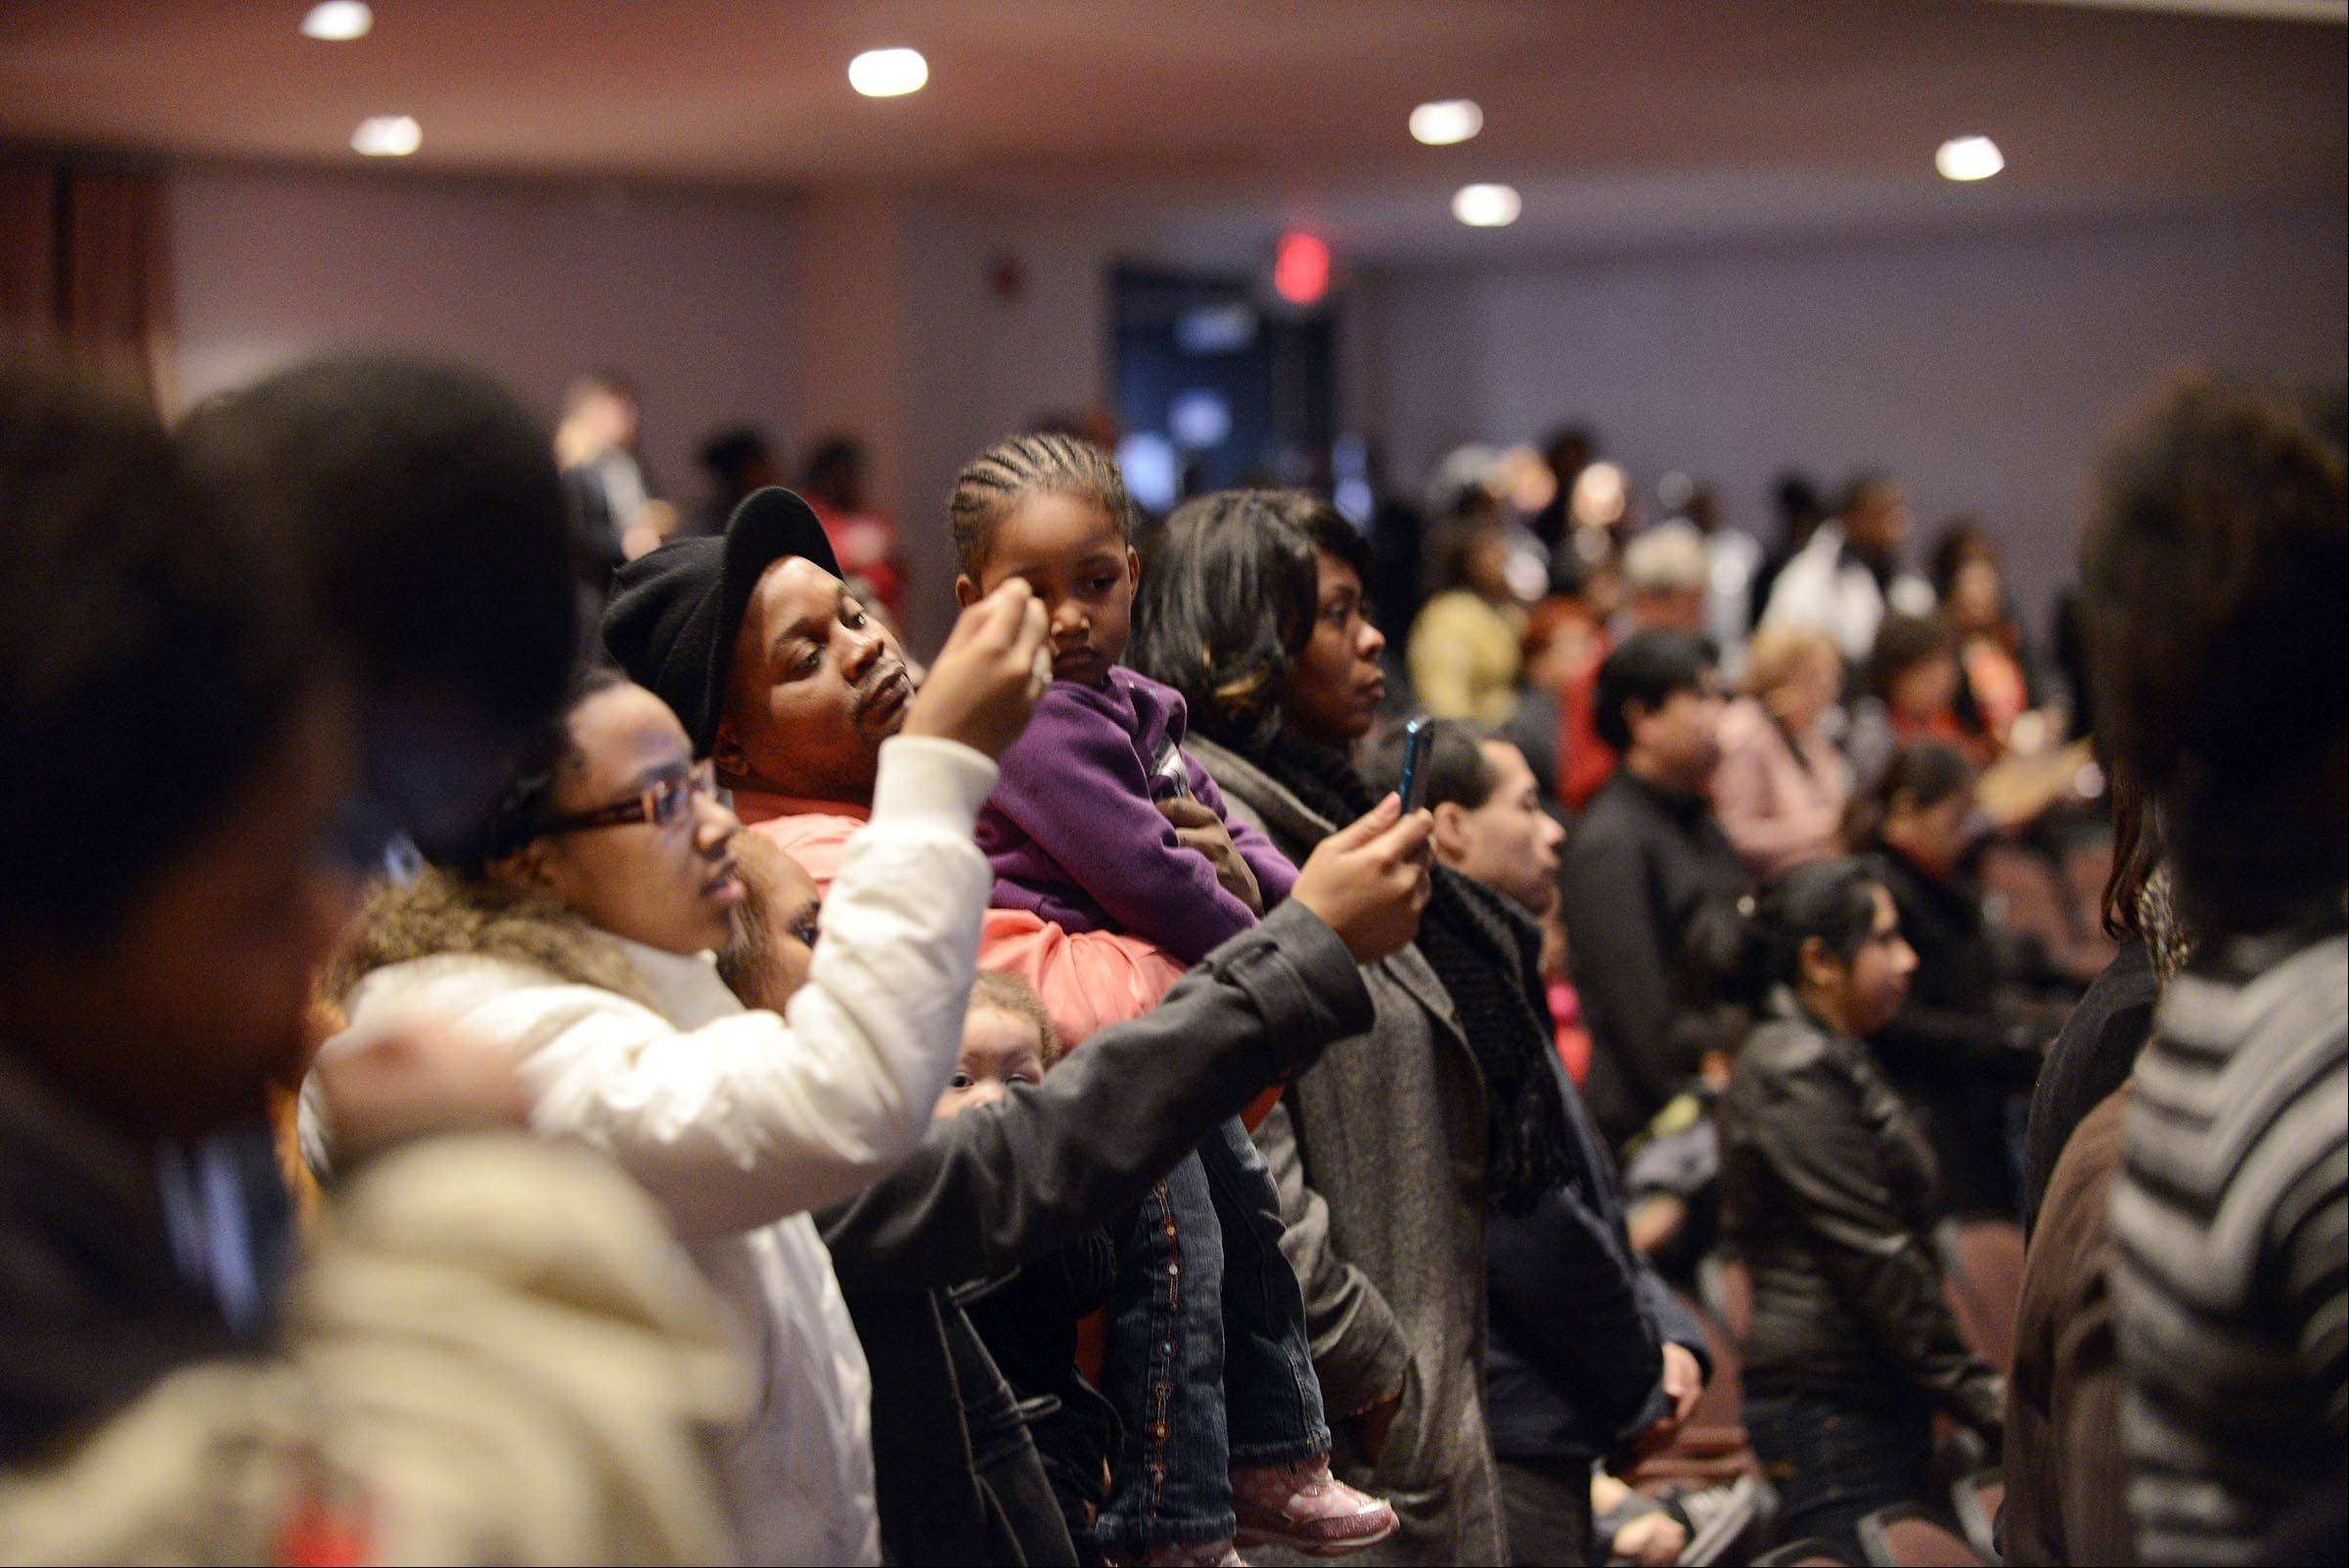 Audience members watch and record the 29th Annual Dr. Martin Luther King Jr. Program at the Hemmens Auditorium in Elgin on Sunday. The event celebrated King's legacy through words, song, prayer and dance.